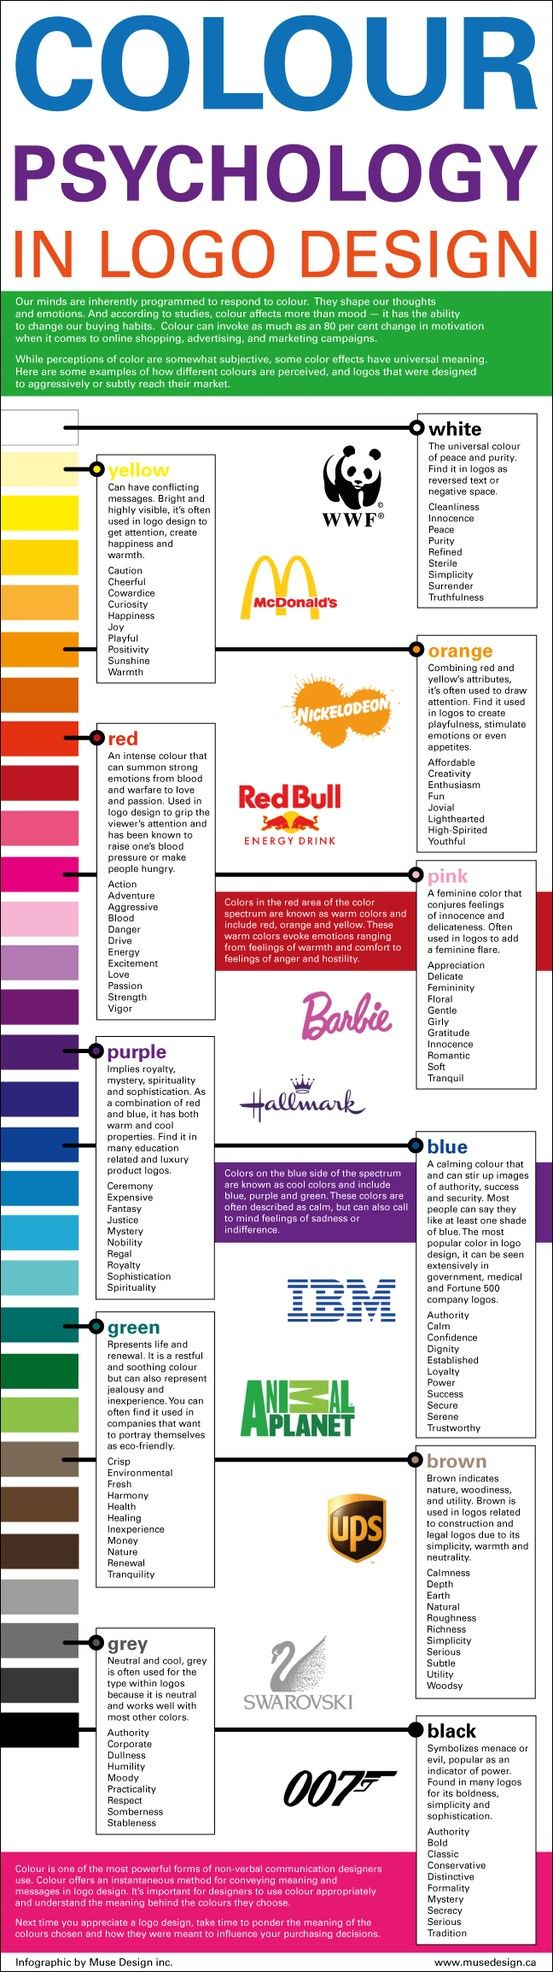 Logo design and psychology of colour